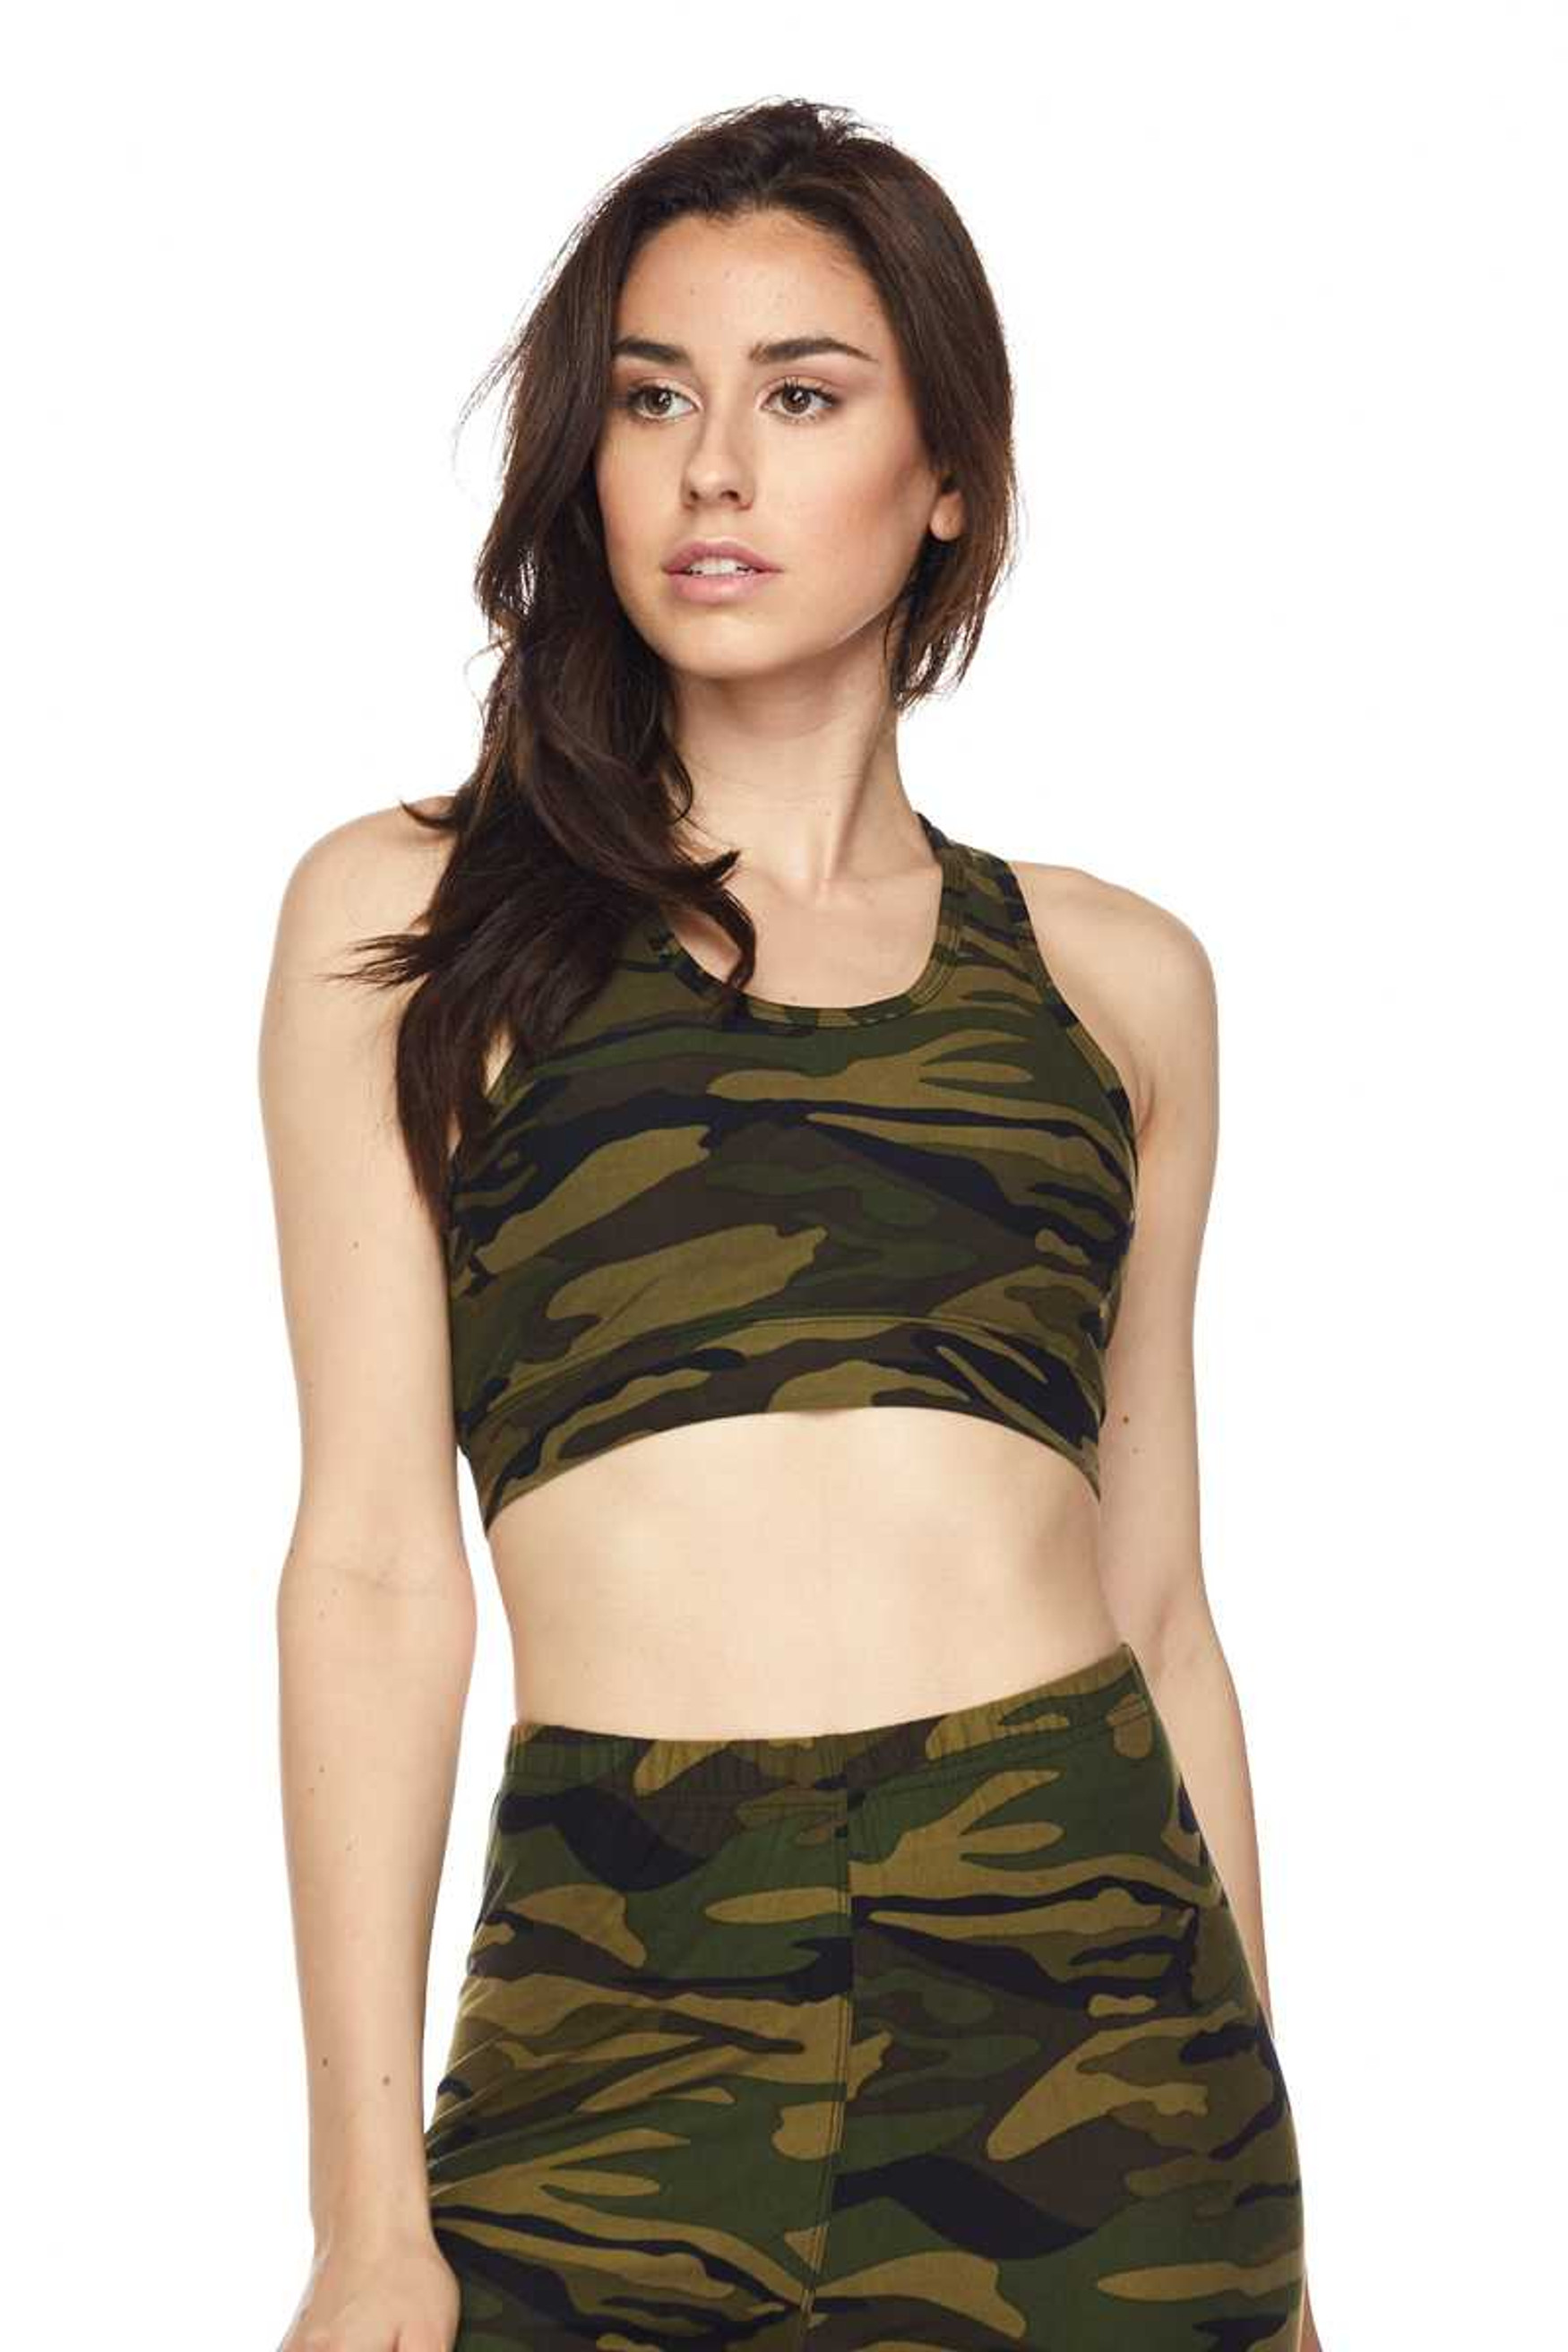 Brushed Green Camouflage Women's Bra Top Front